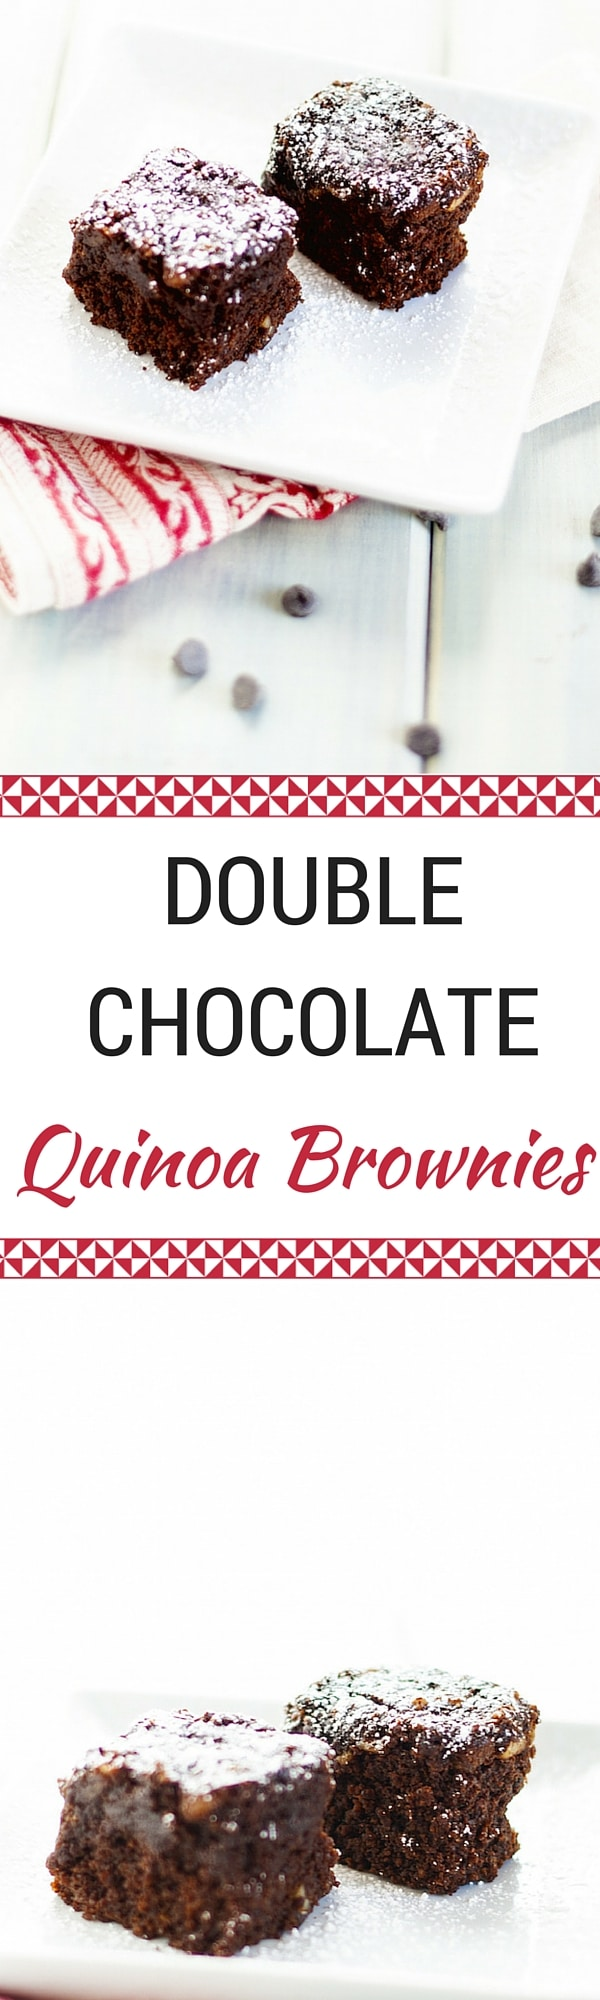 Double Chocolate Quinoa Brownies - Wendy Polisi